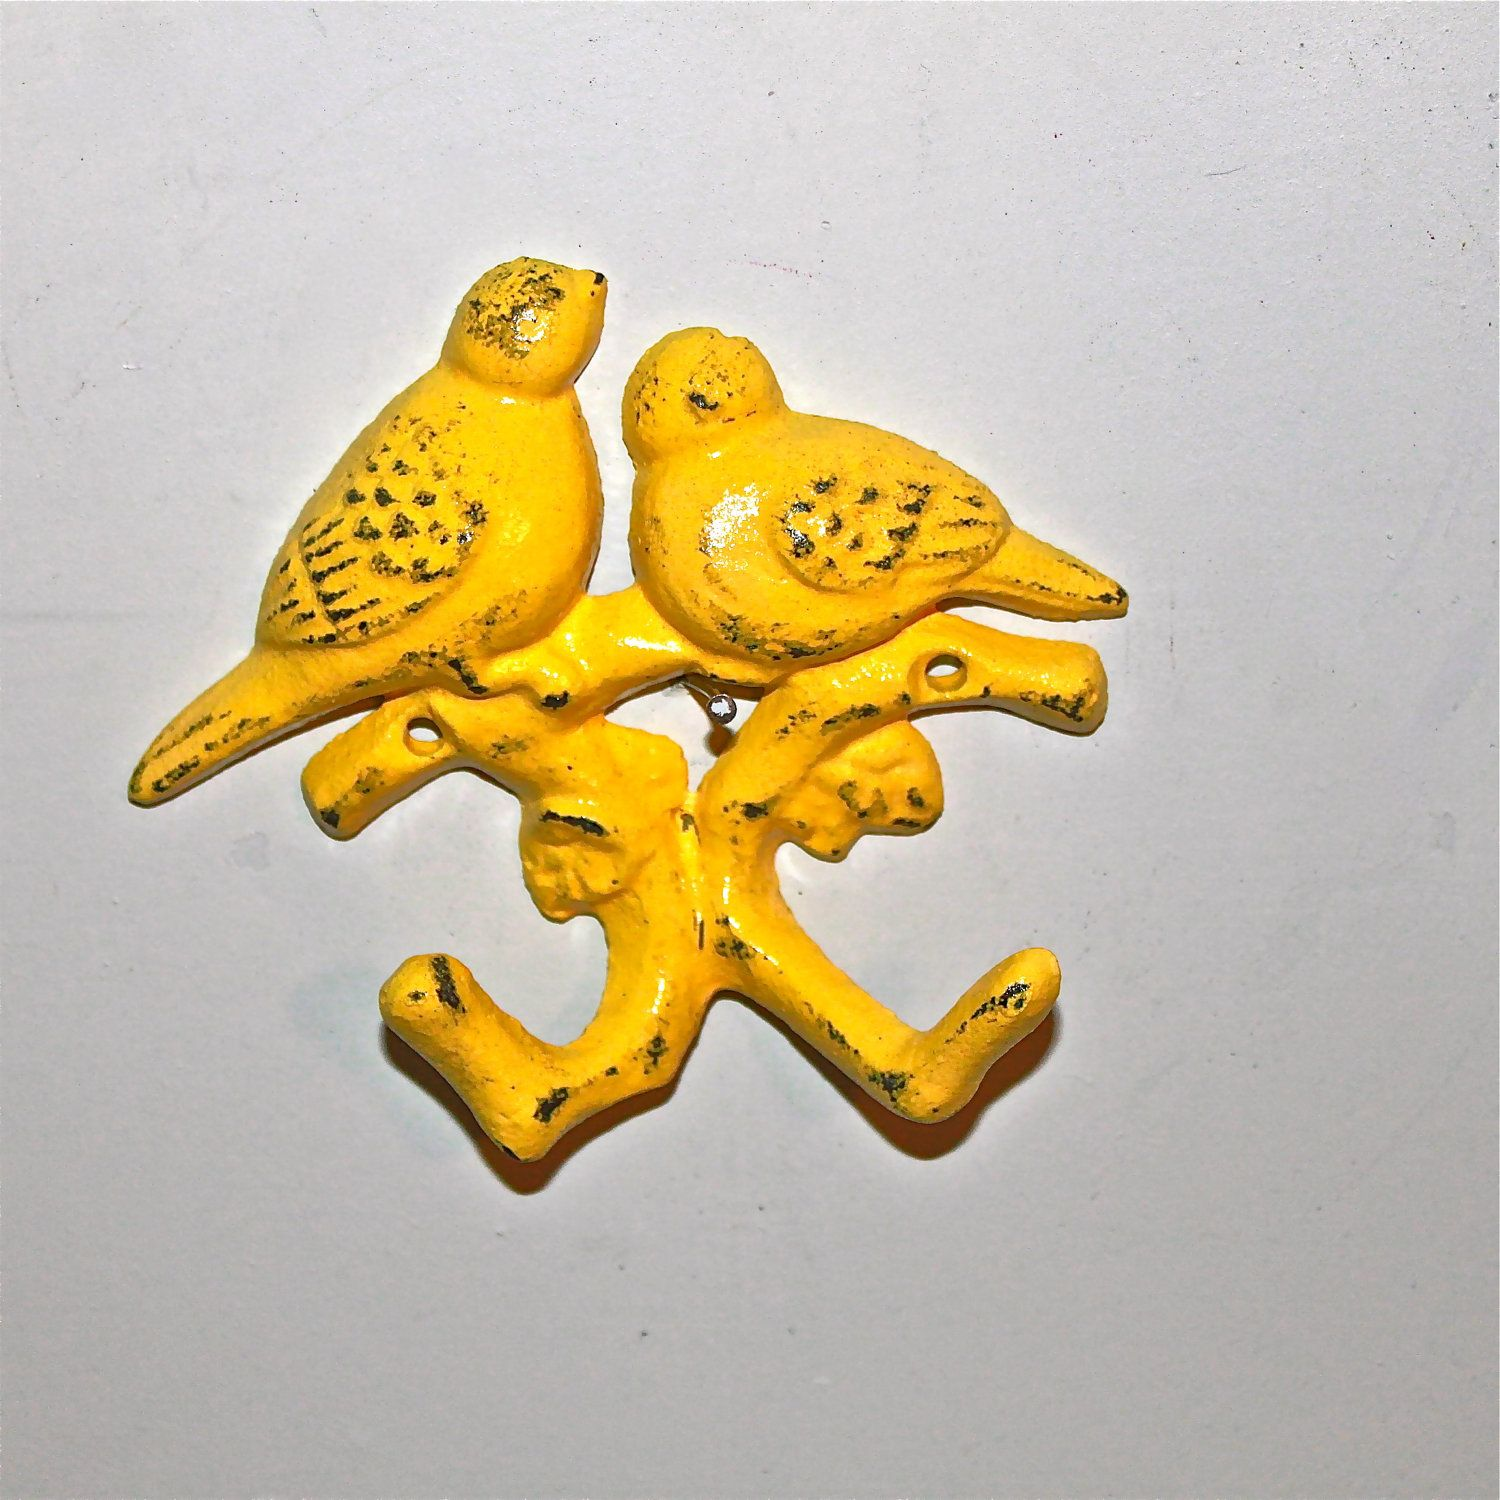 Yellow Bird Wall Hook / Whimsy Love Birds /Whimsical Key hanger ...